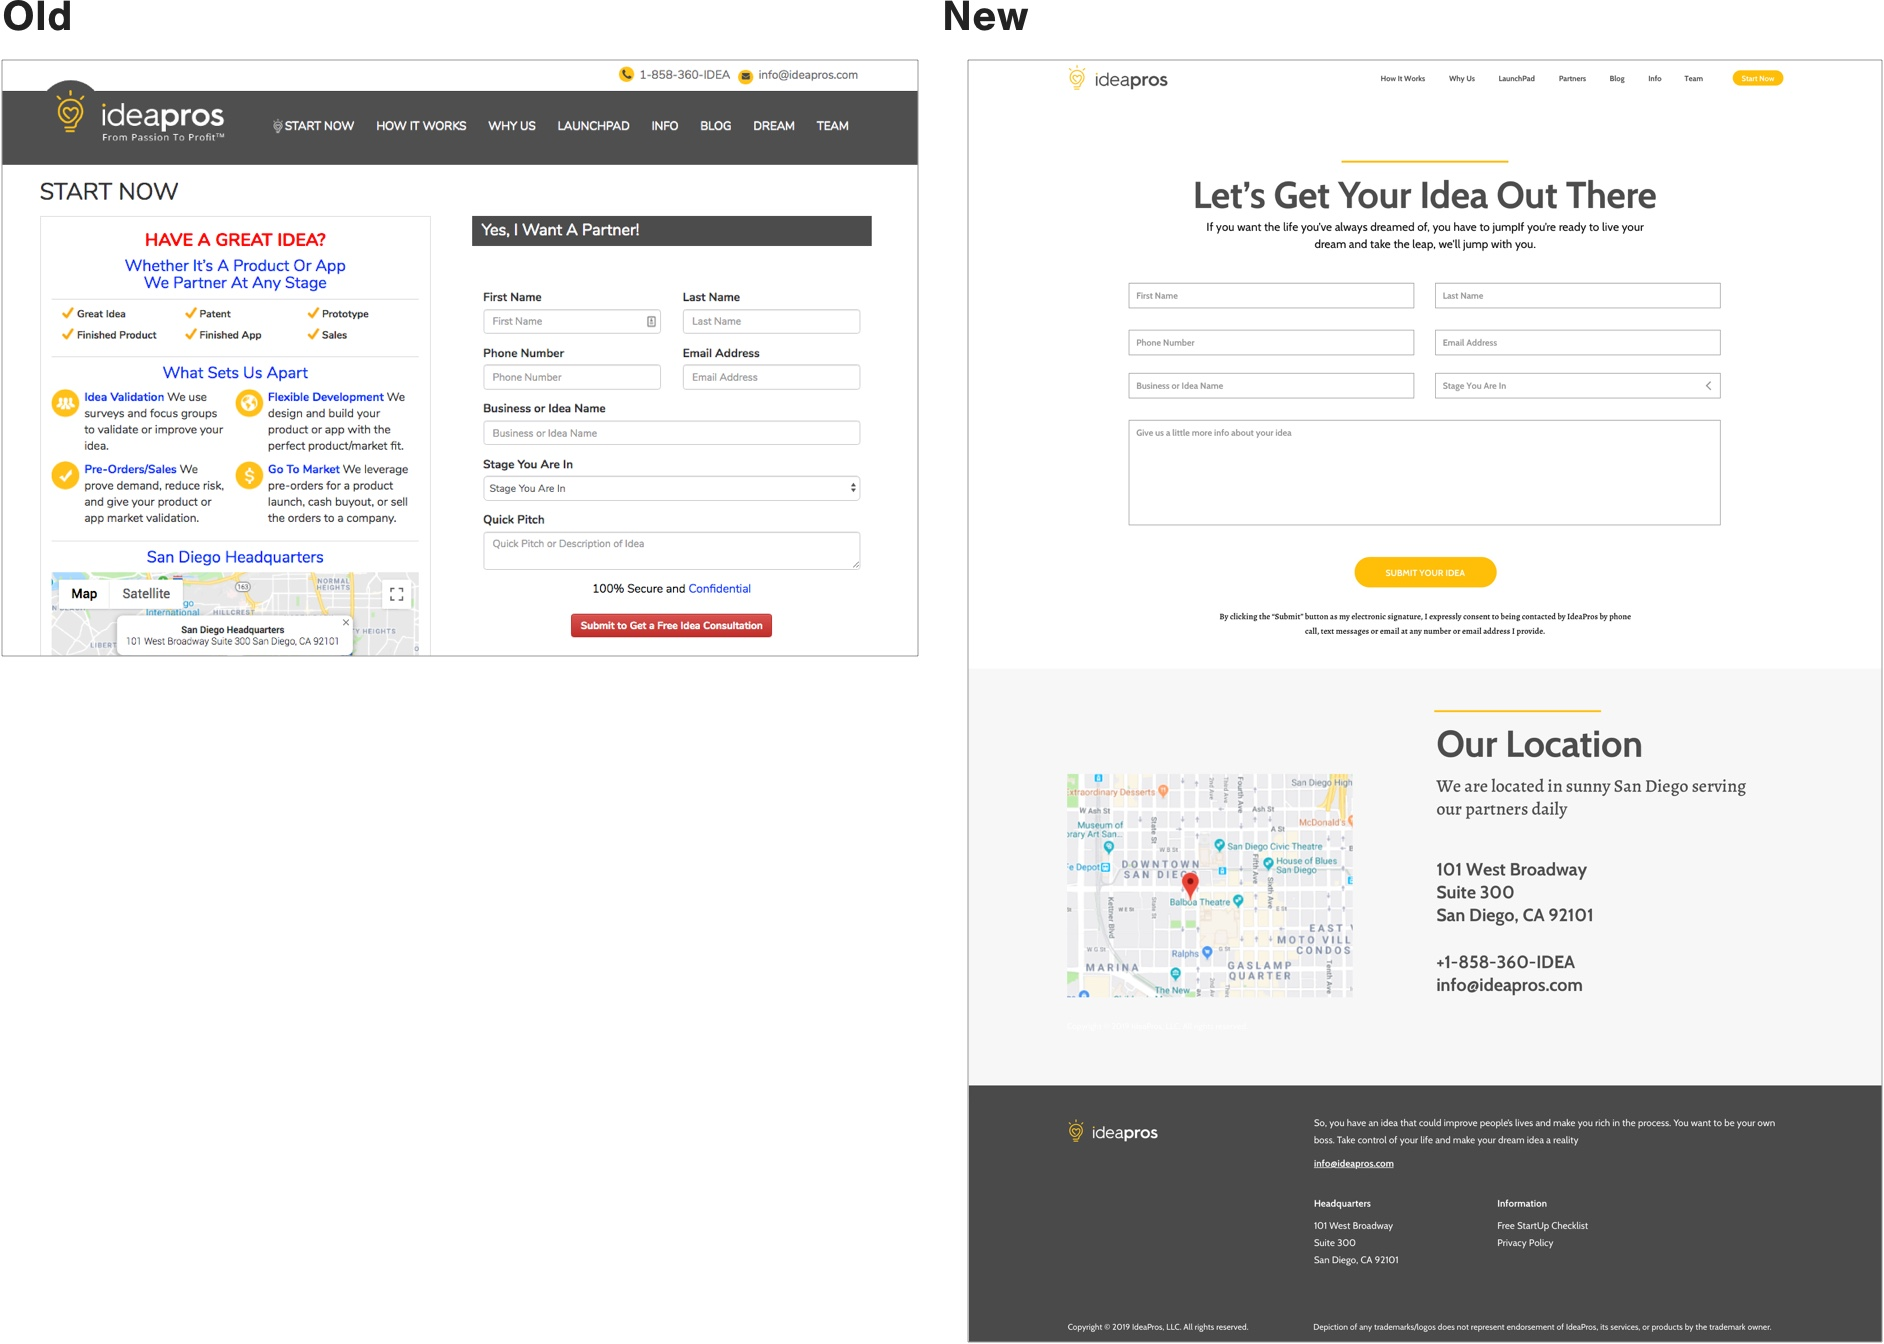 IdeaPros Start Now Page Design Comparison New and Old